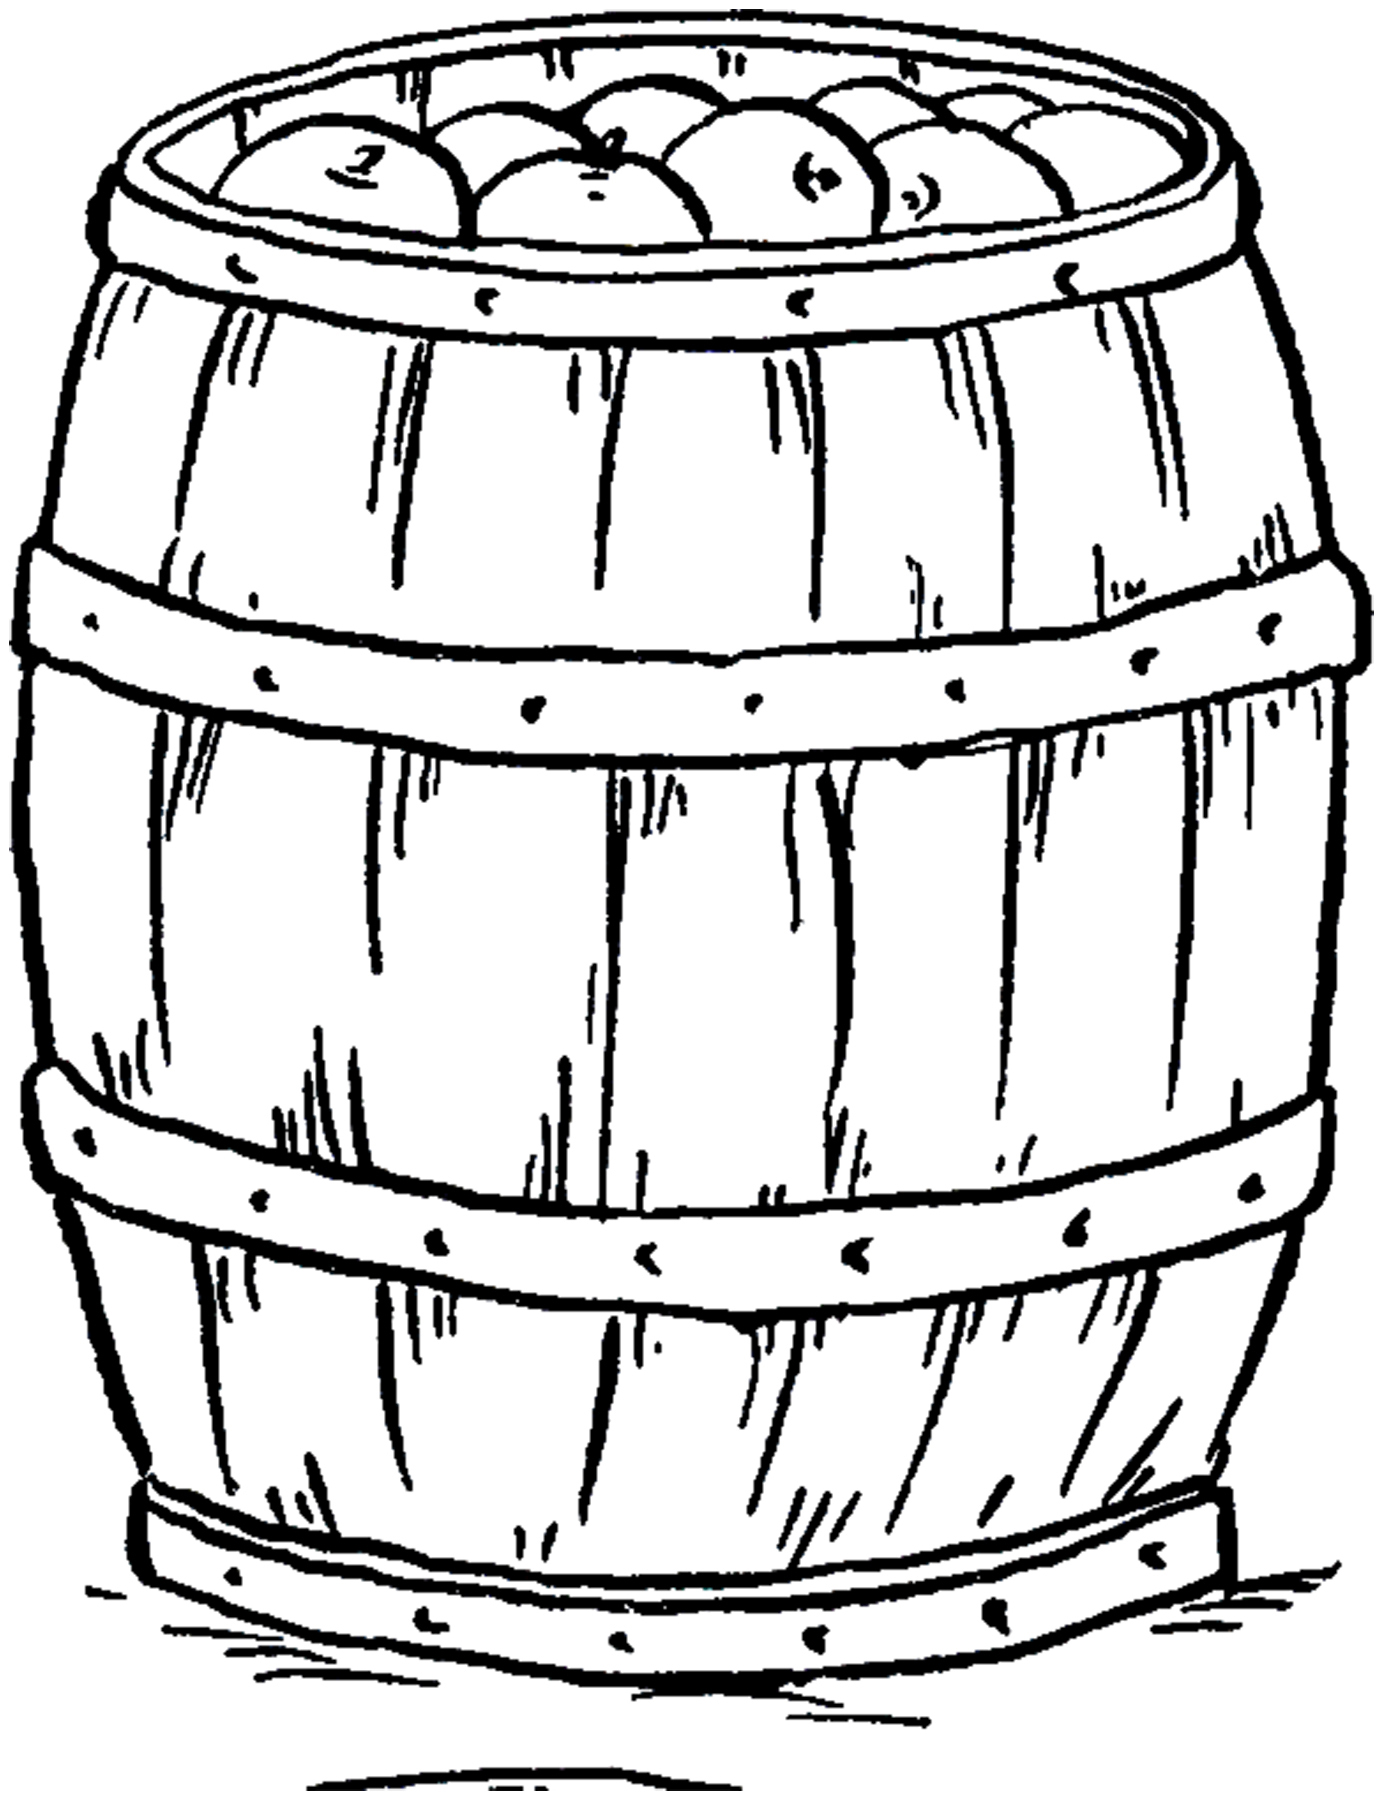 vintage apple barrel image the graphics fairy